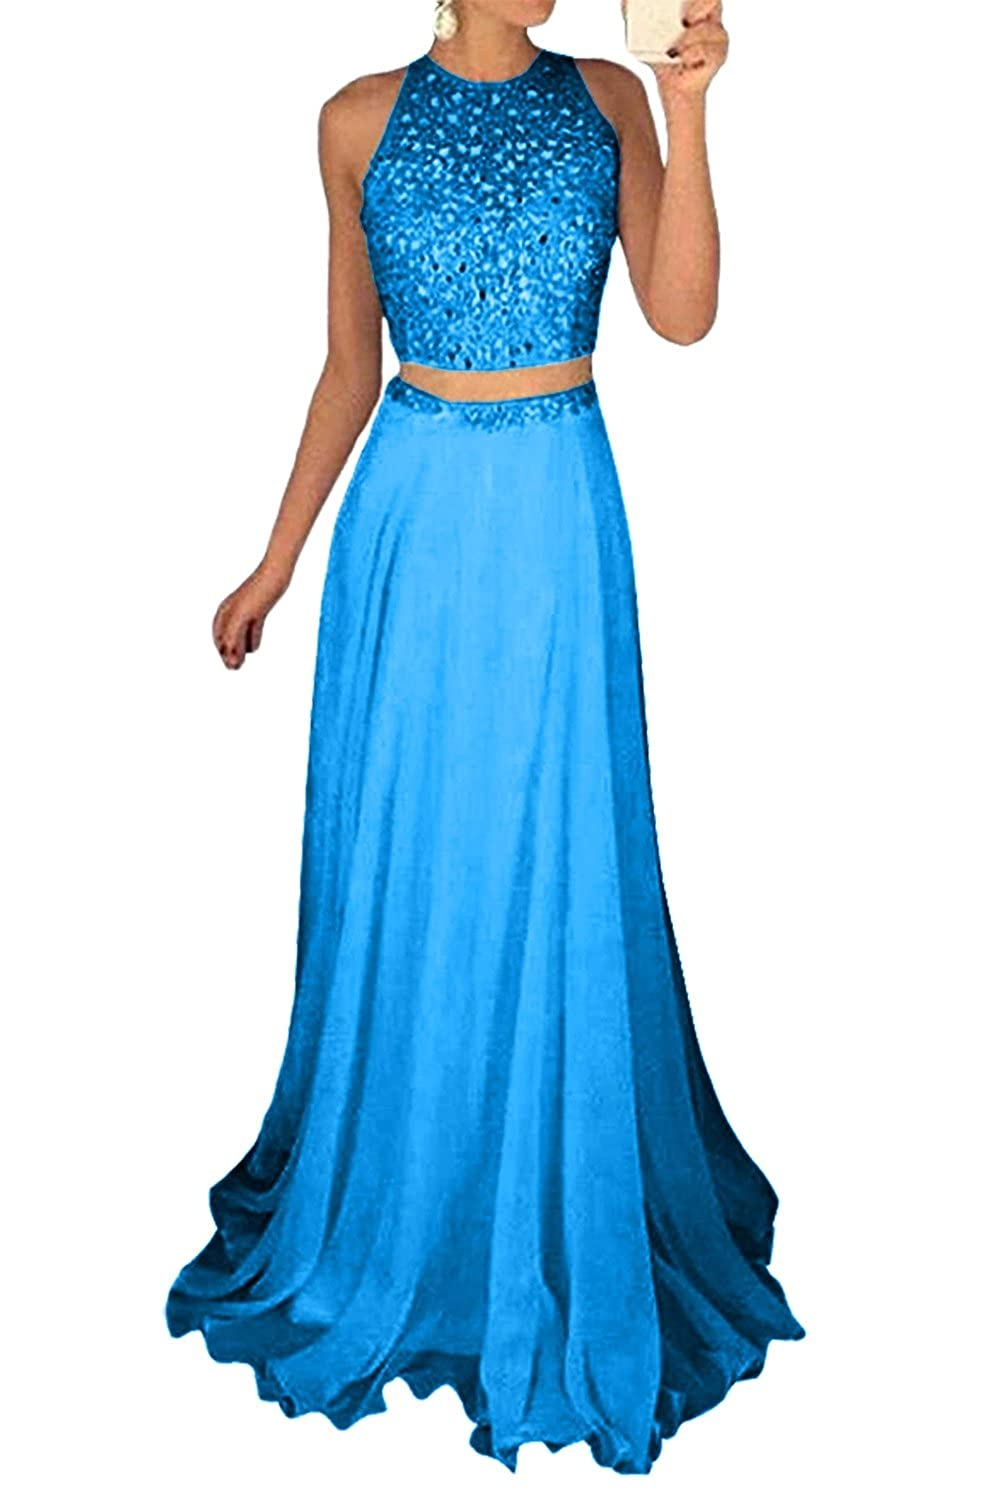 b8905545c22 Top 10 wholesale 2 Piece Long Prom Dresses - Chinabrands.com